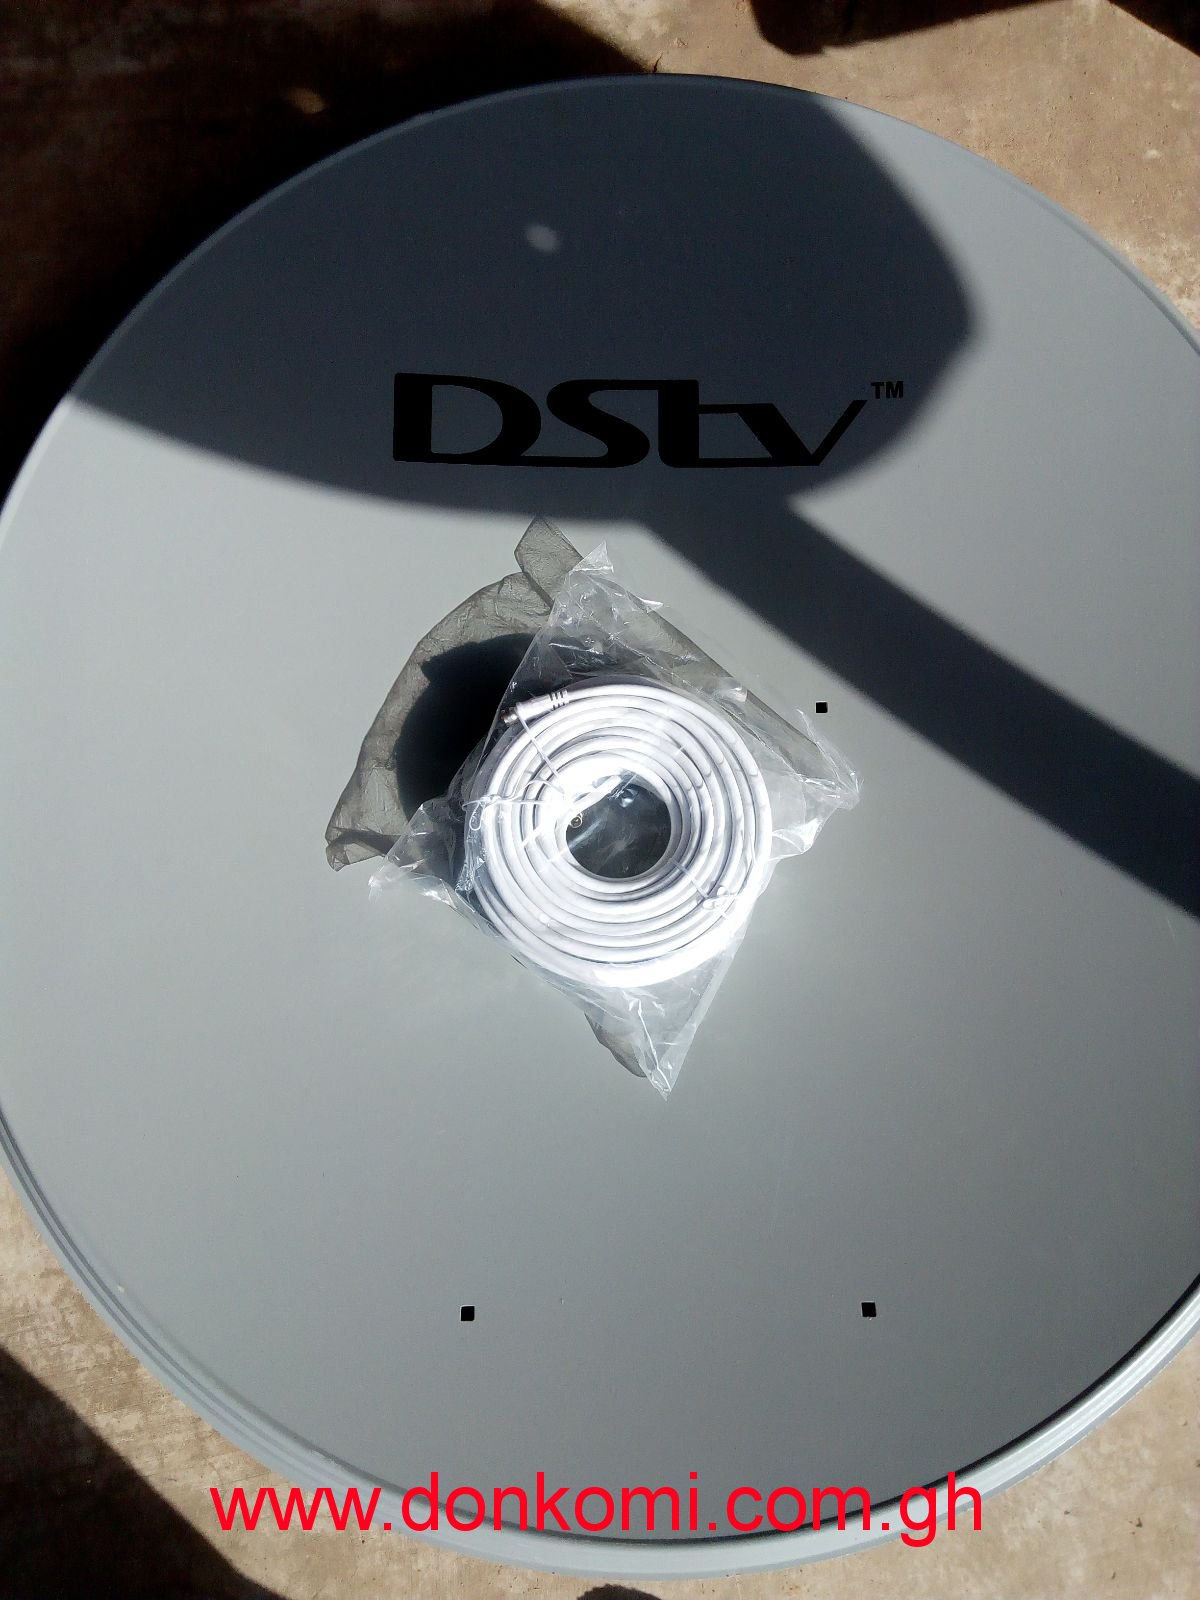 DSTV FULLY INSTALLED